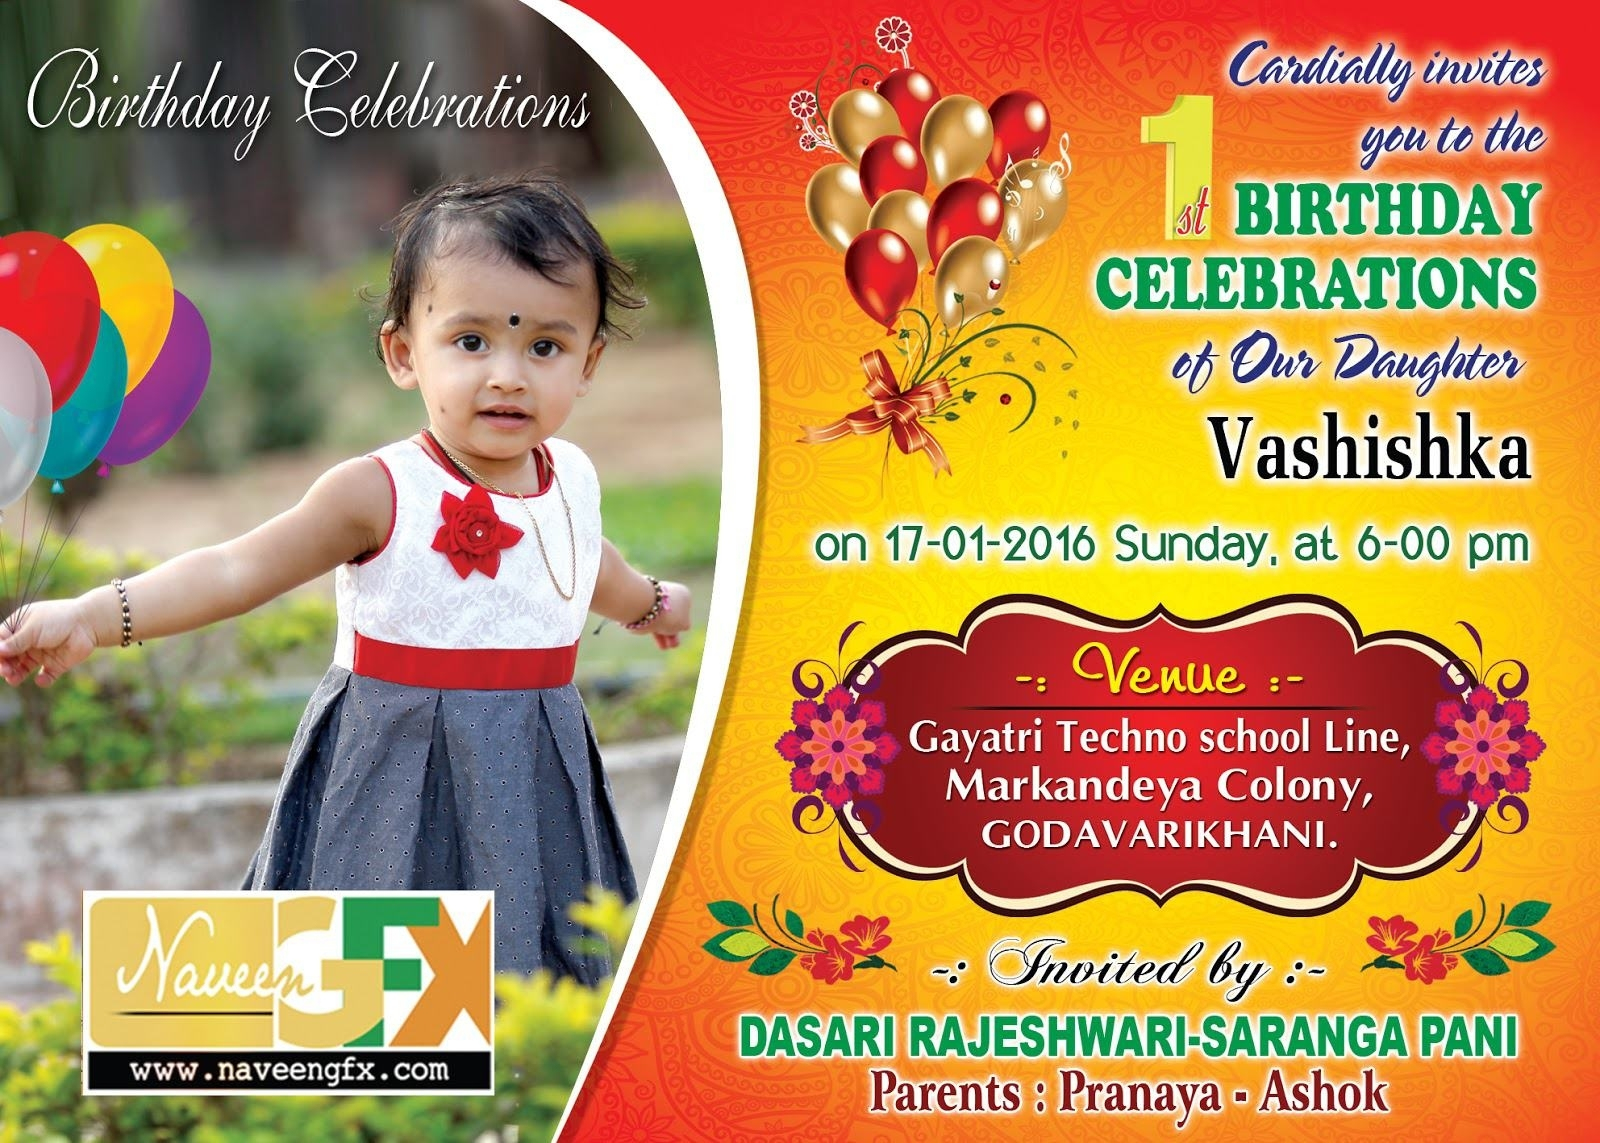 birthday invitation maker ; Birthday-Invitation-Card-Maker-this-may-be-suitable-for-the-source-of-inspiration-of-your-invitation-arrangement-with-a-simple-design-but-gives-a-special-impression